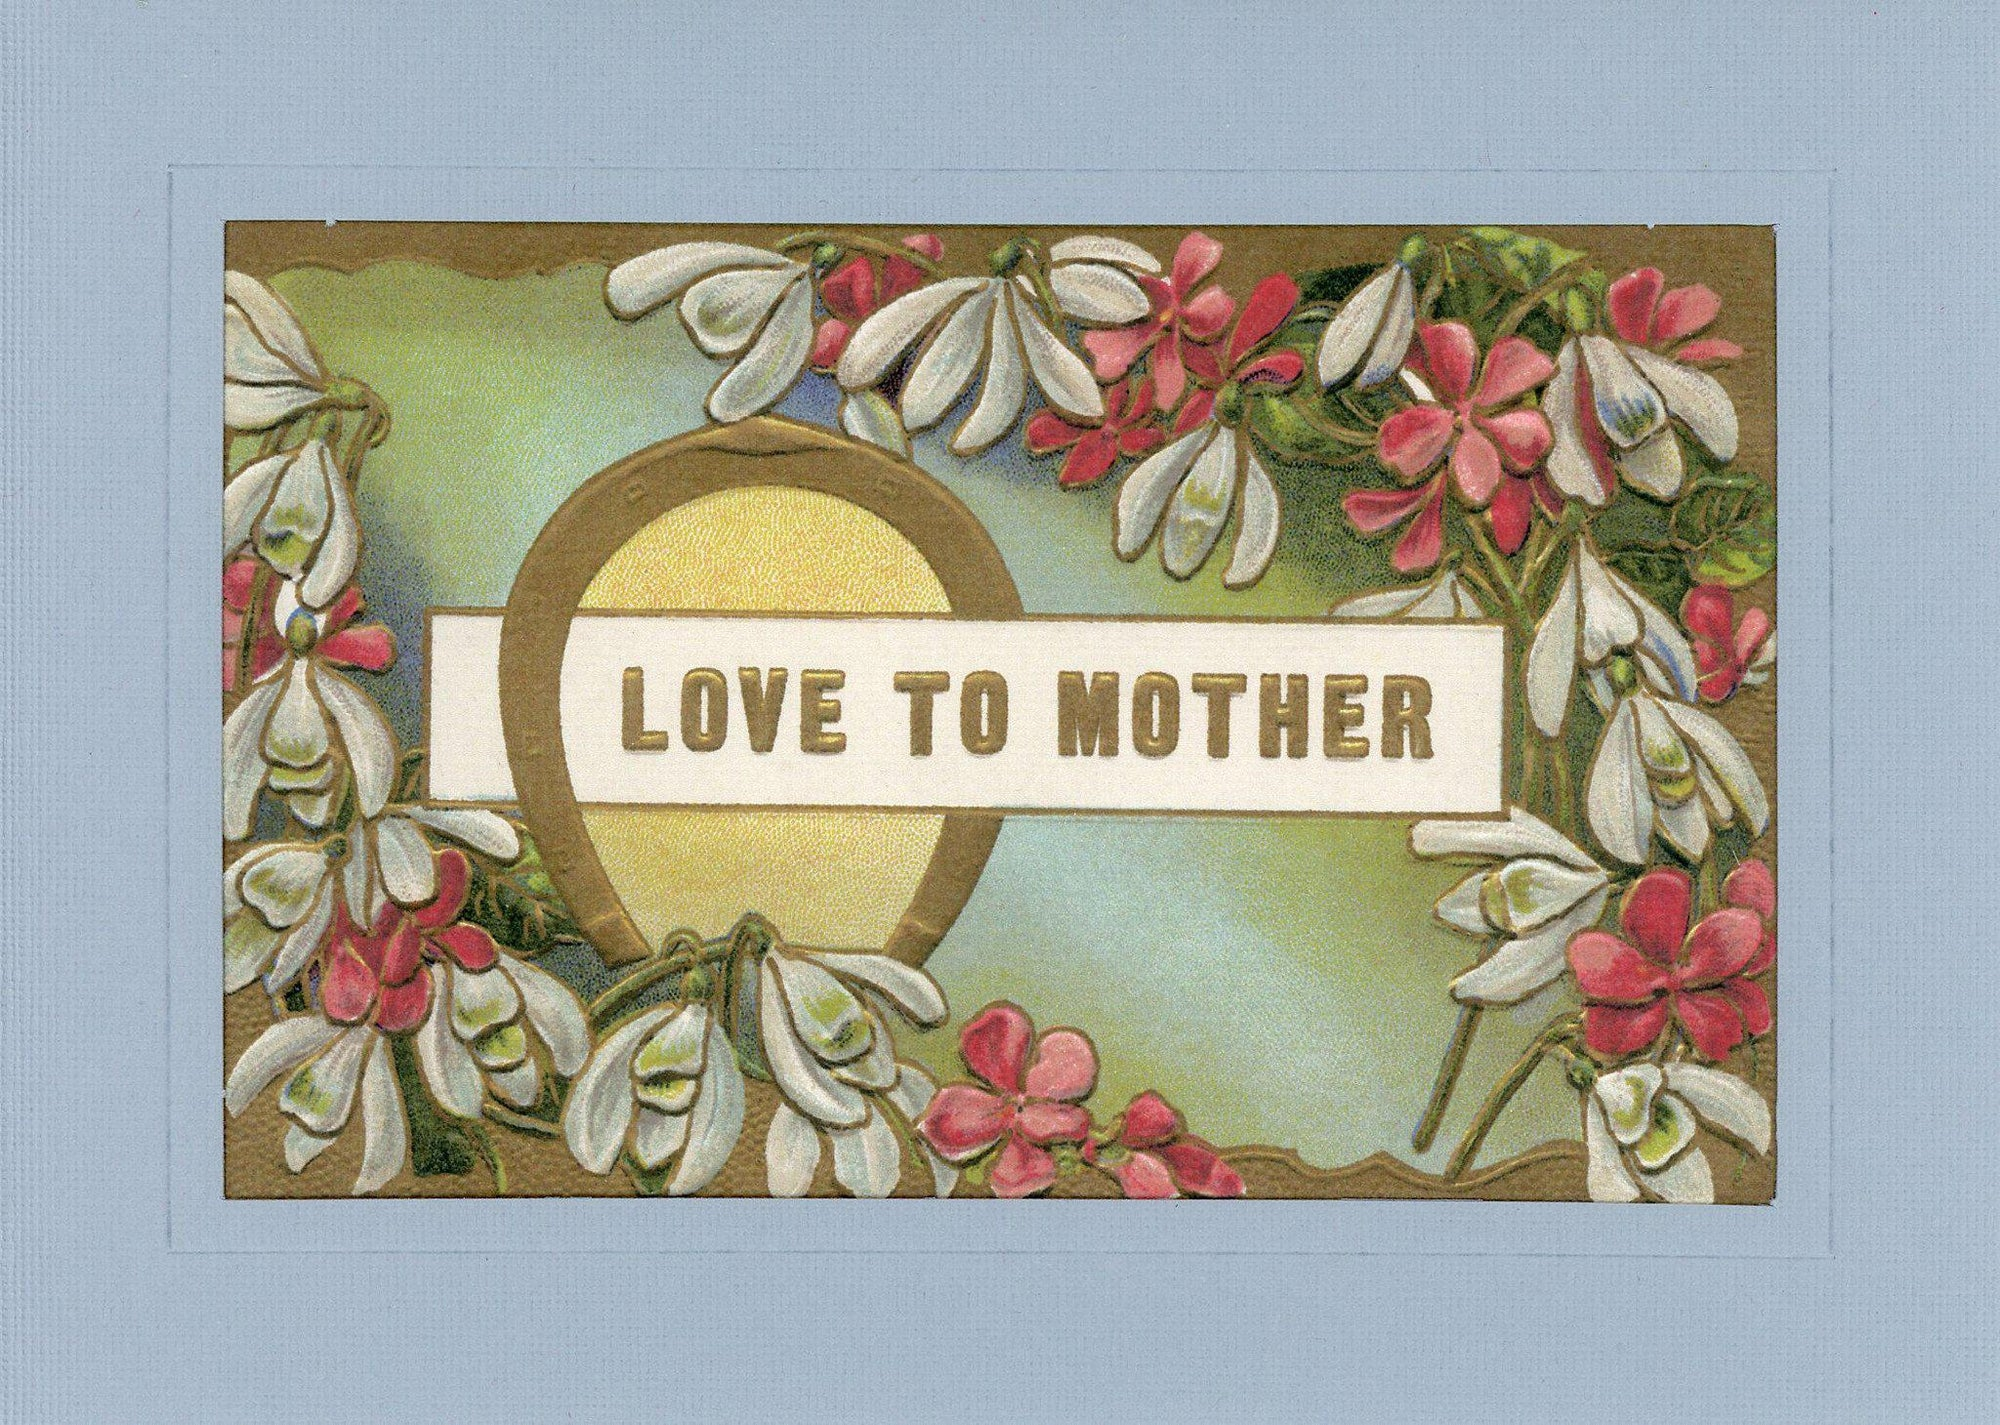 Love to Mother-Greetings from the Past-Plymouth Cards